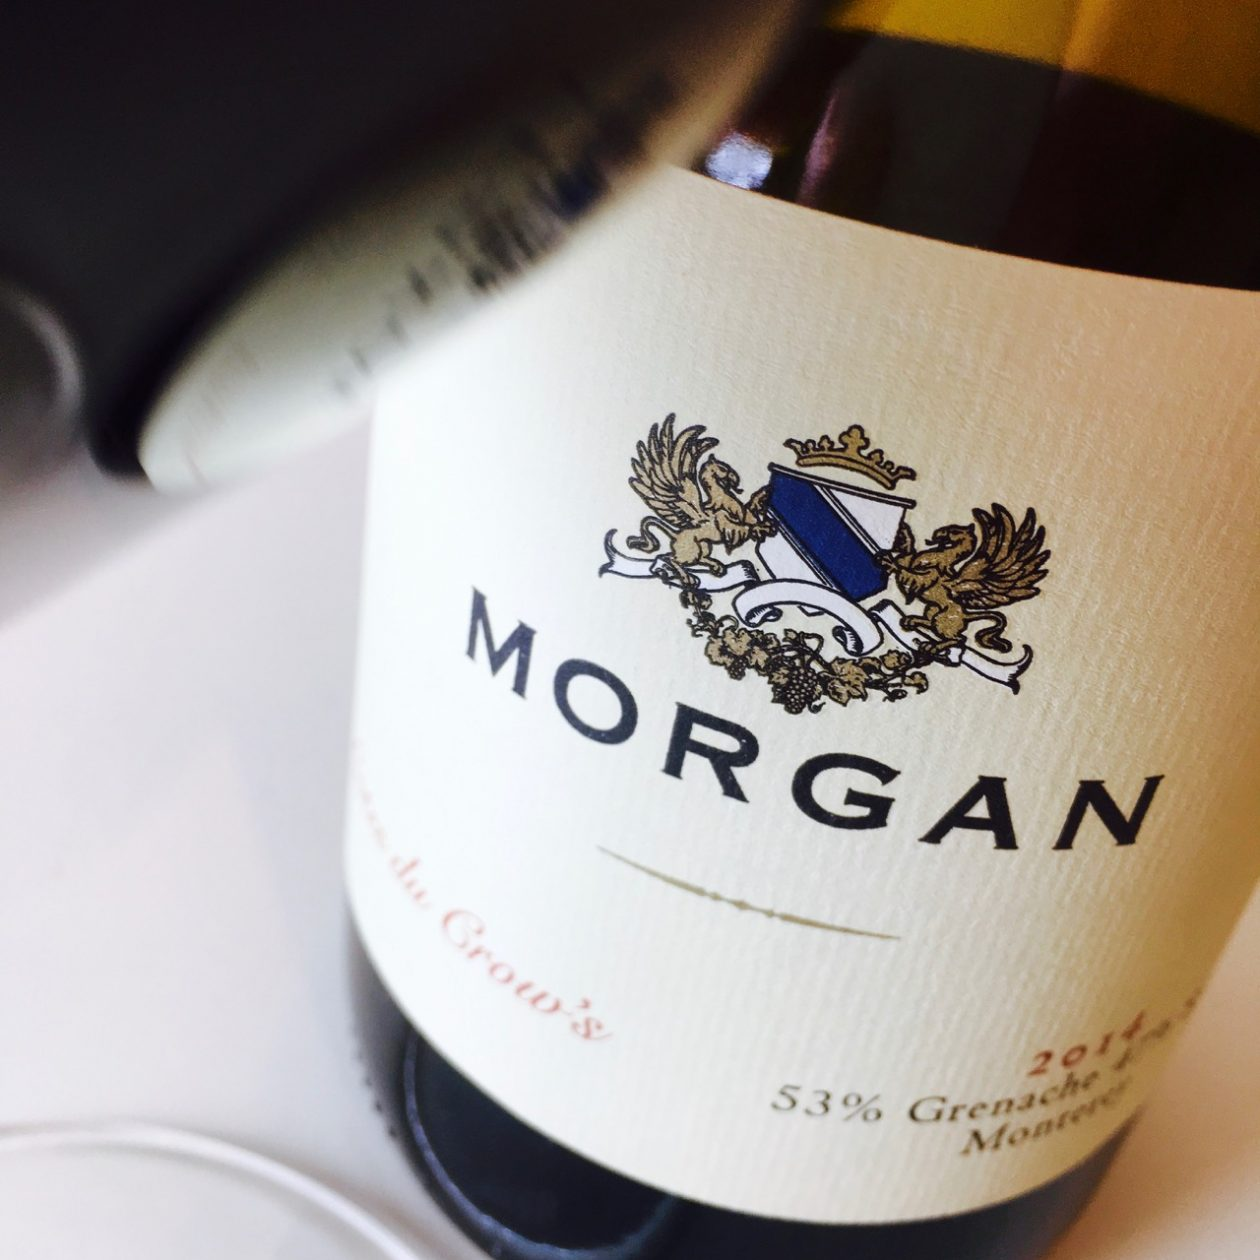 2014 Morgan Winery Red Blend Côtes du Crow's Monterey County